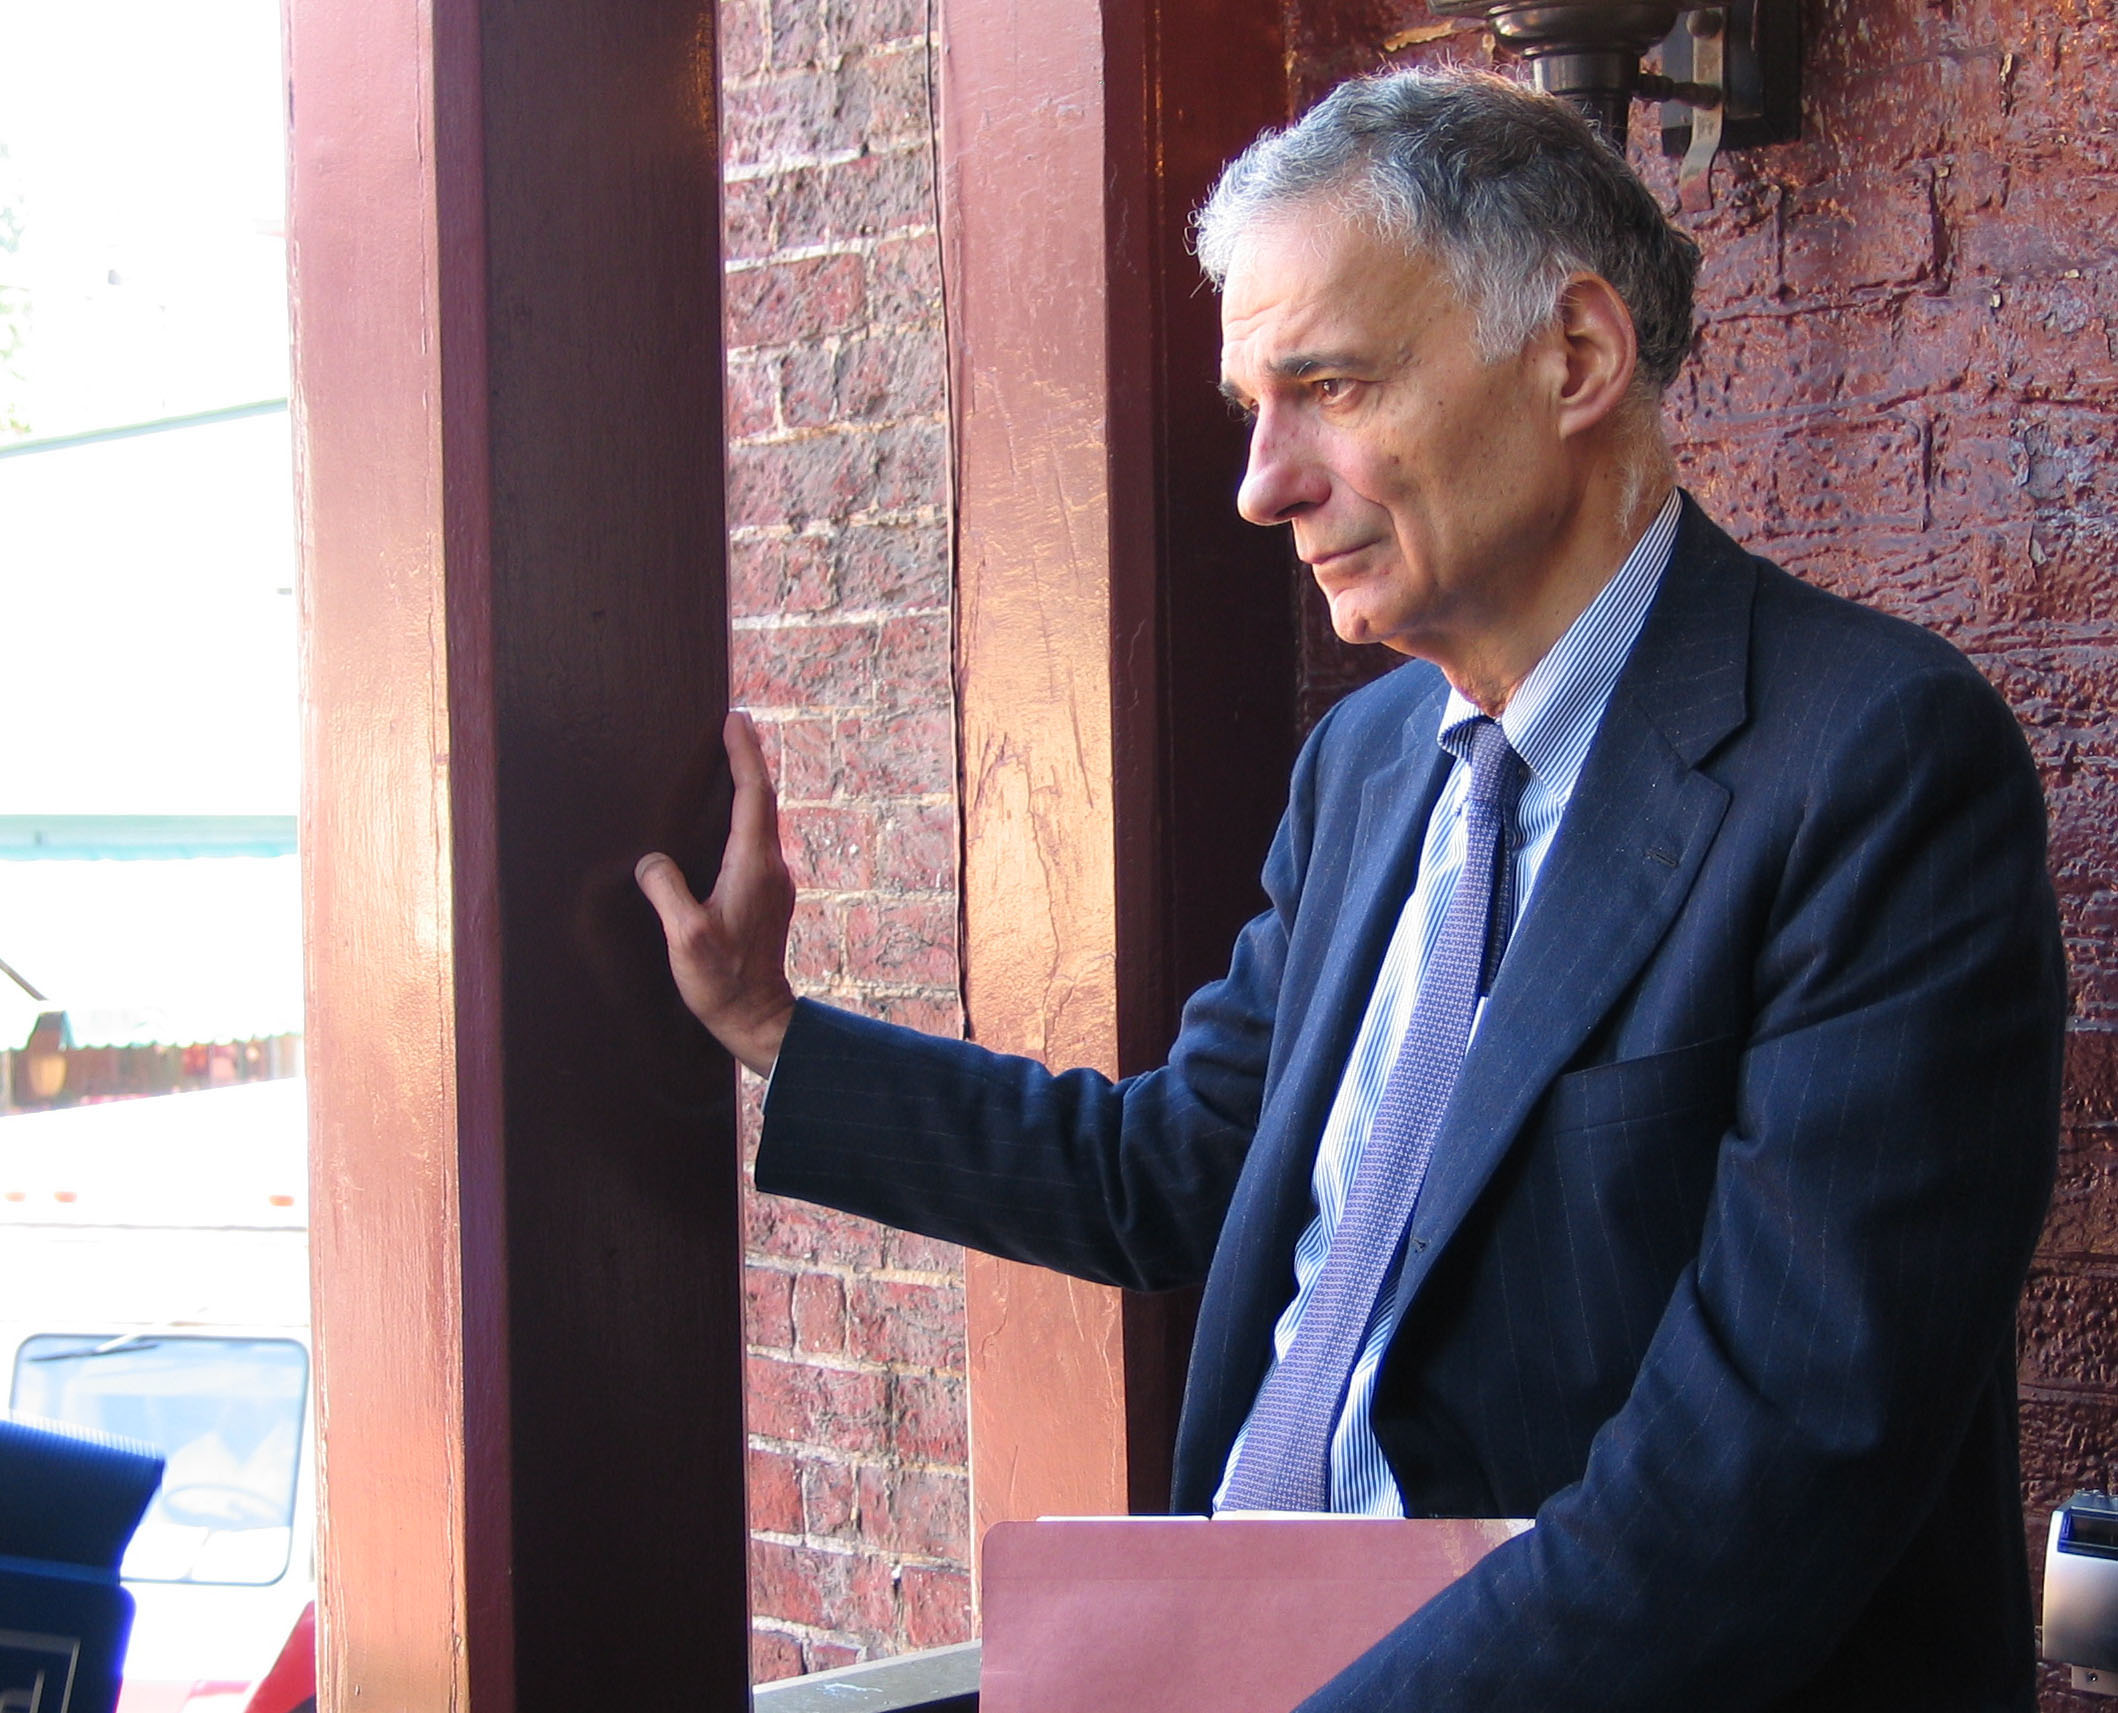 ralph nader research paper At paper-research view bio of ralph nader if this is not enough information, order a custom written biography.